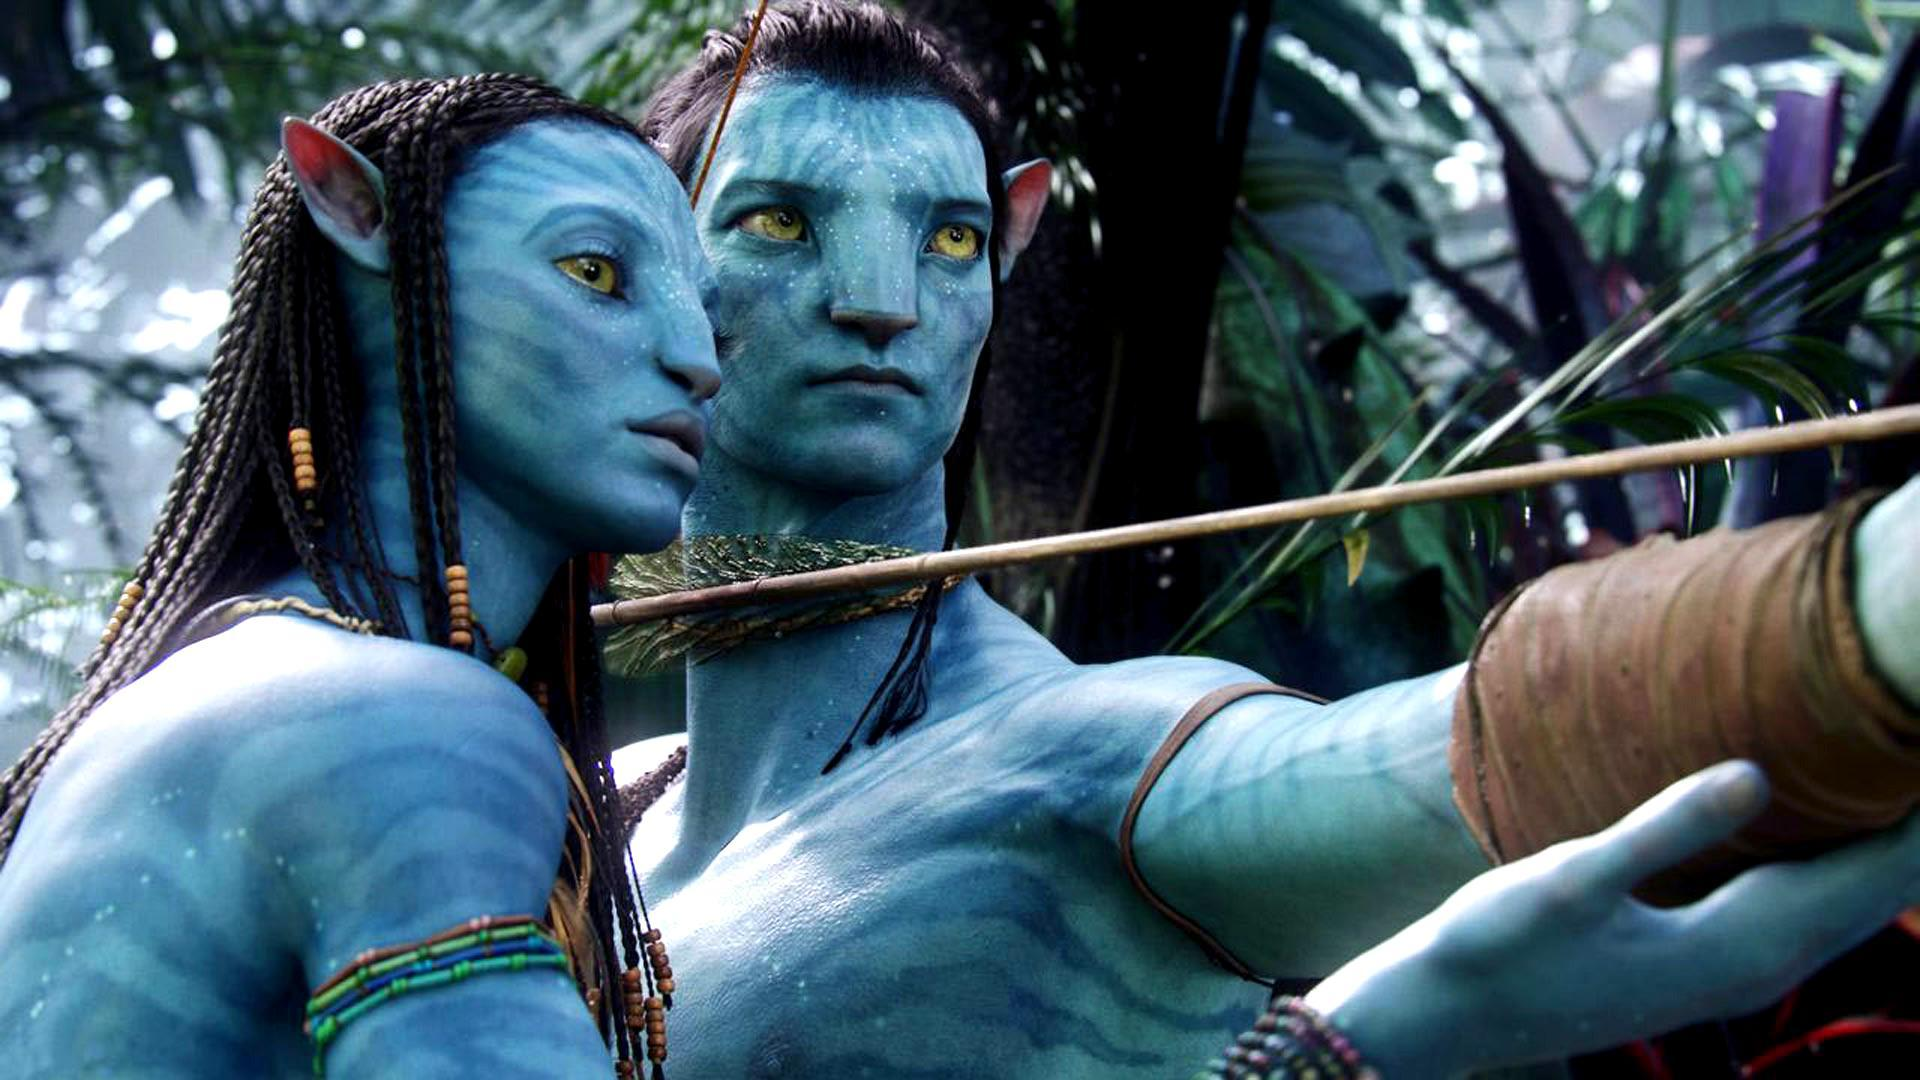 The official release dates for all 4 Avatar sequels have been revealed as production begins